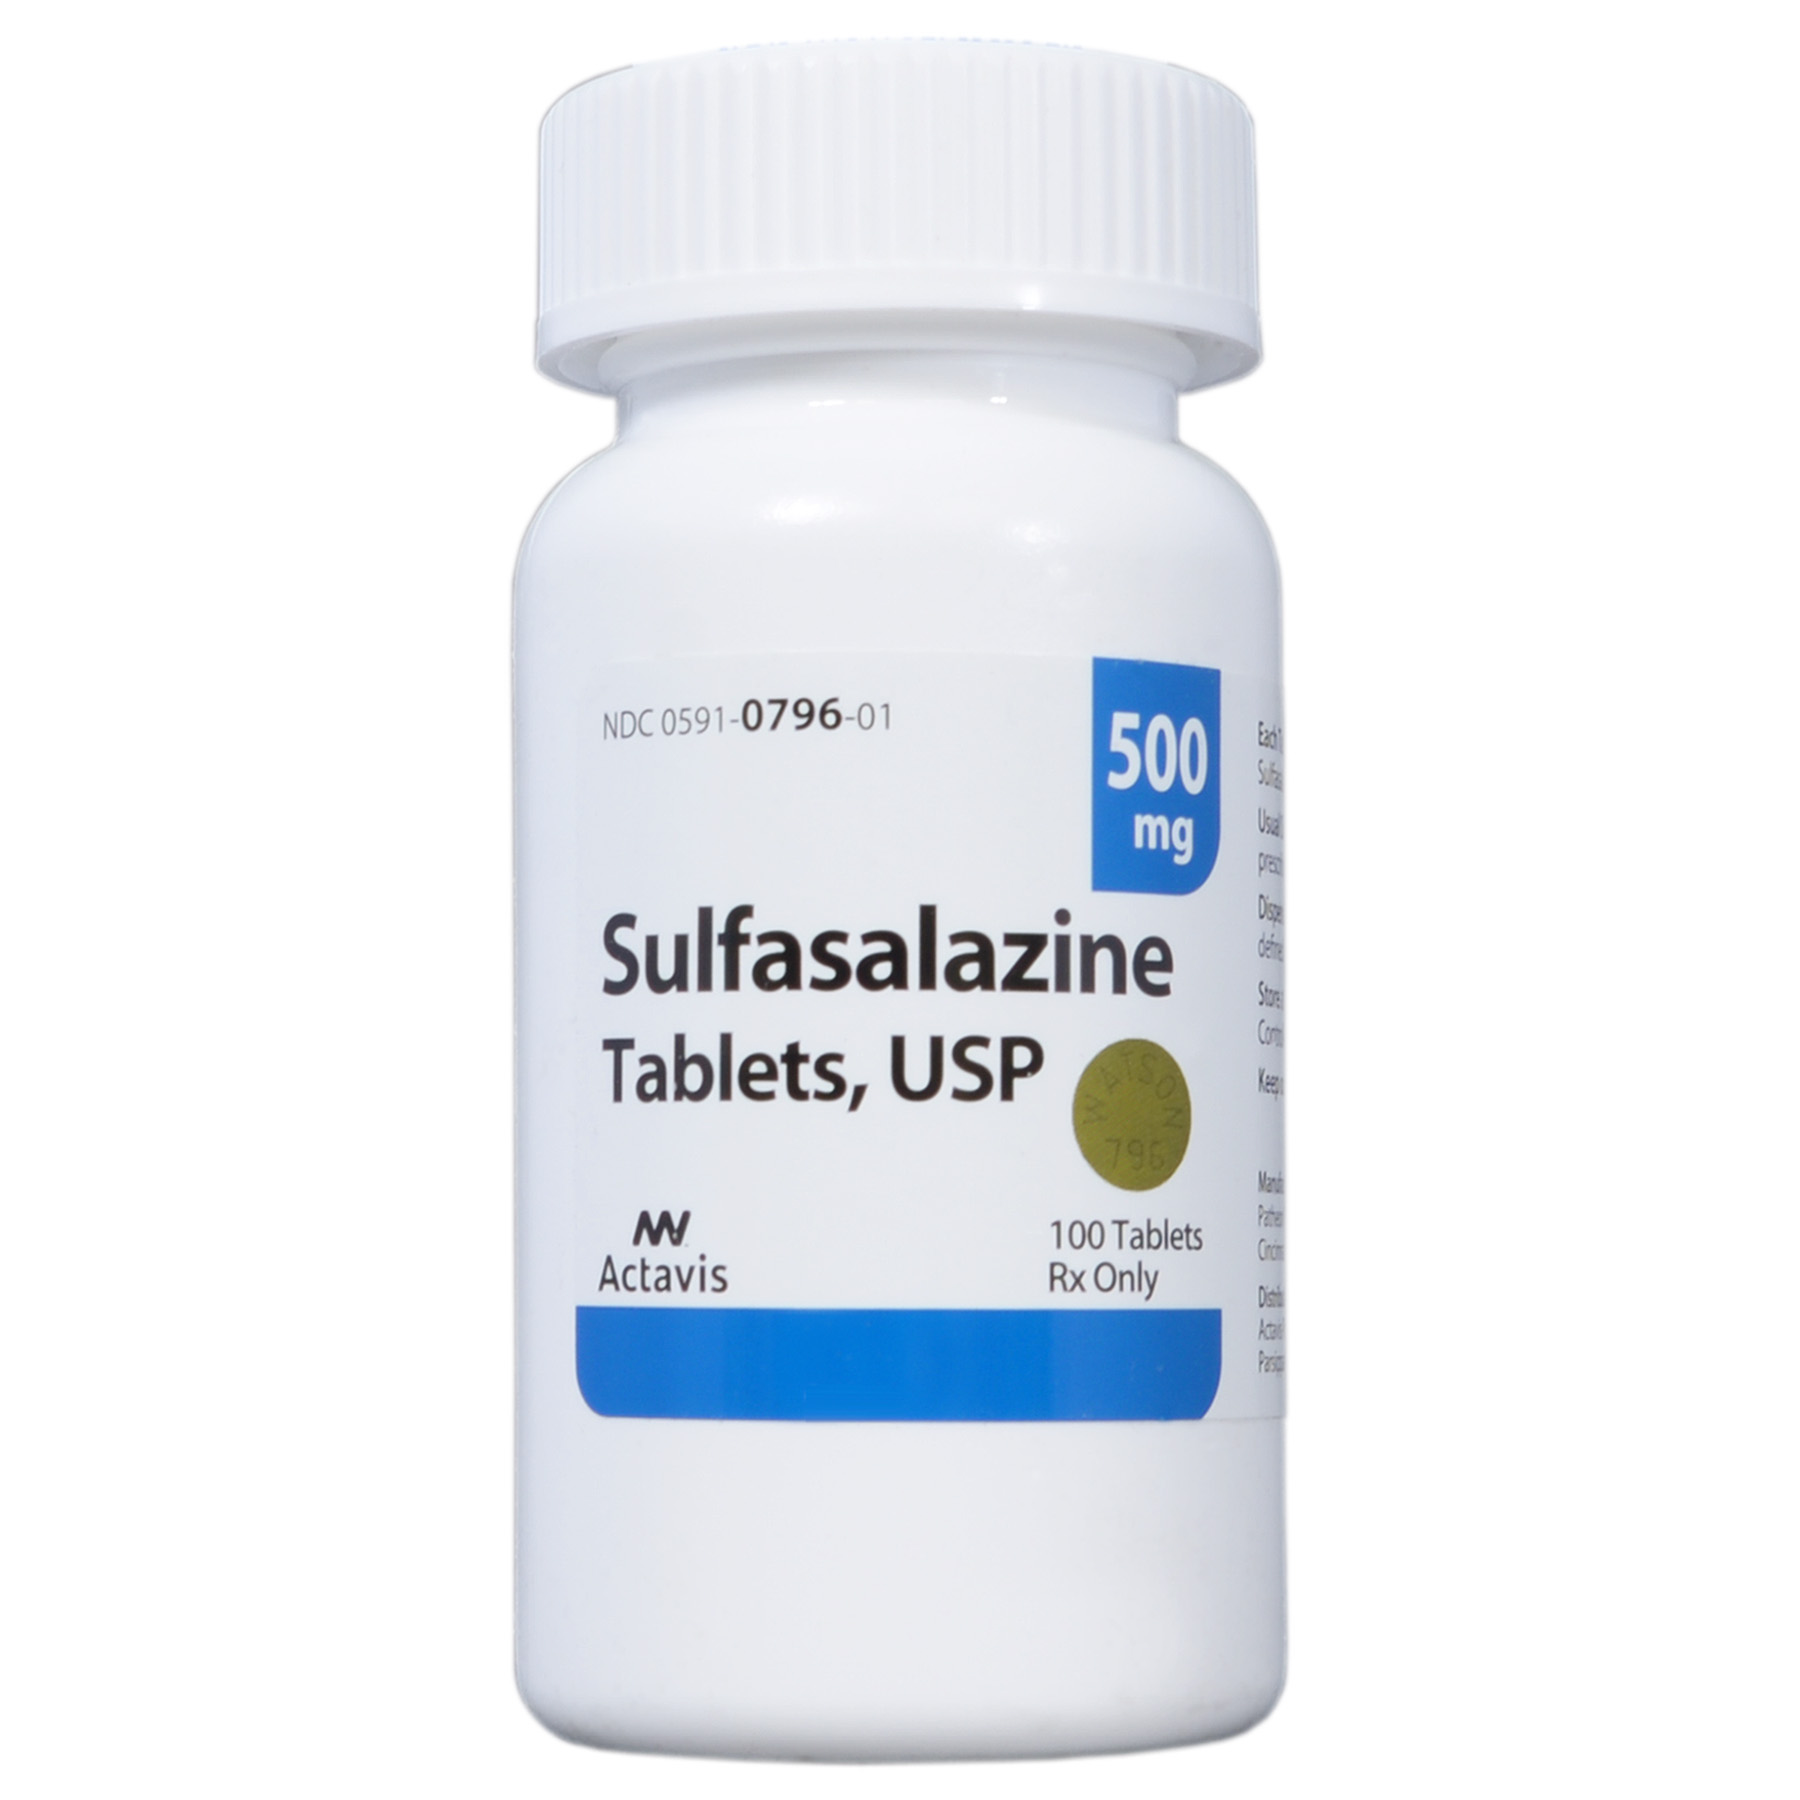 Sulfasalazine (Click for Larger Image)